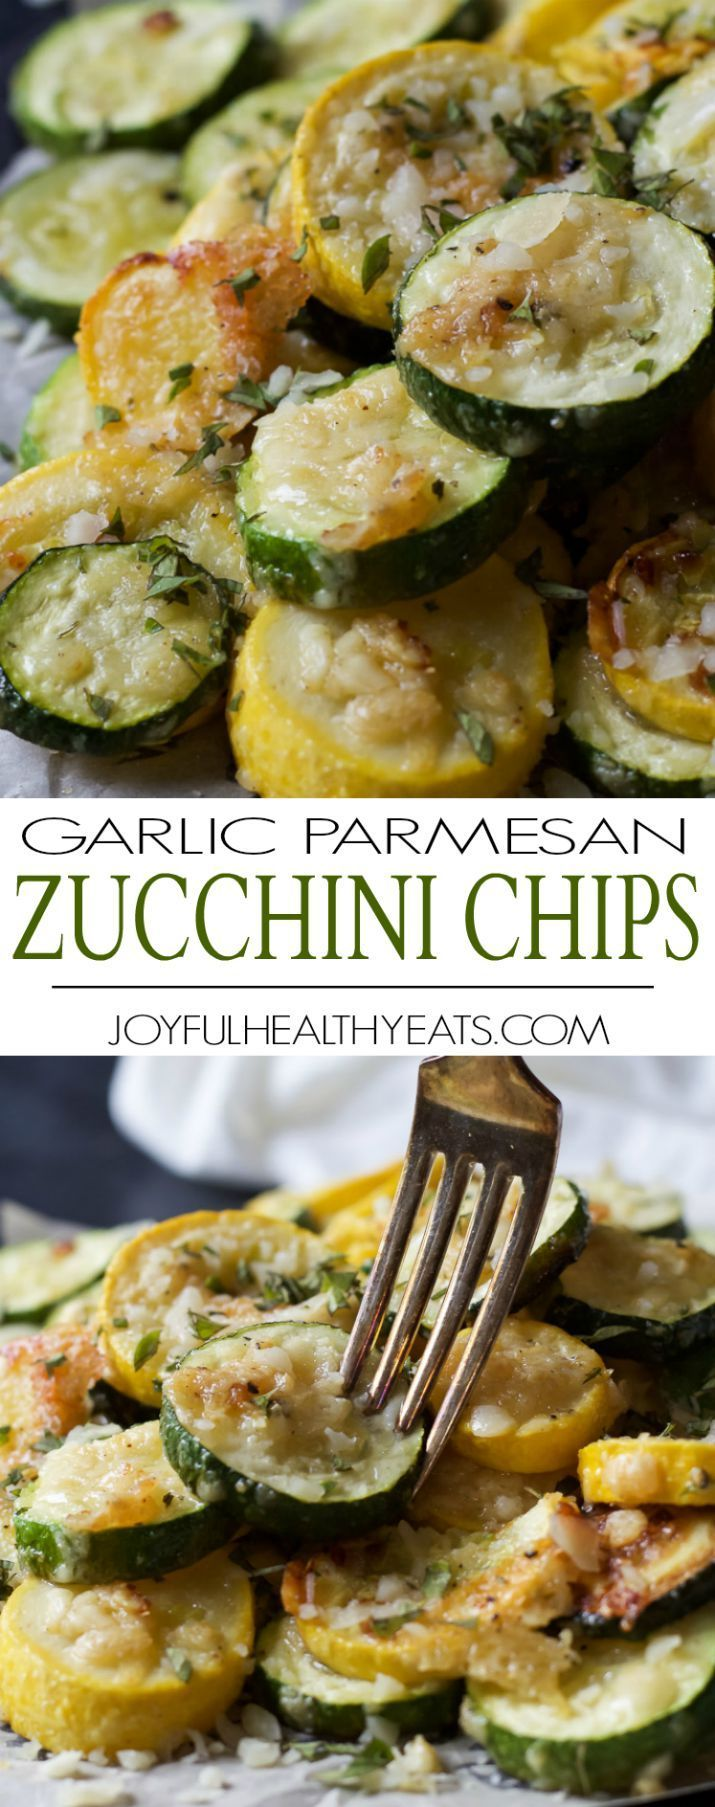 Crispy Parmesan Garlic  Zucchini Chips you won't be able to stop popping these in your mouth! Veggies never tasted so good!! Best way to use up extra zucchini! | http://joyfulhealthyeats.com